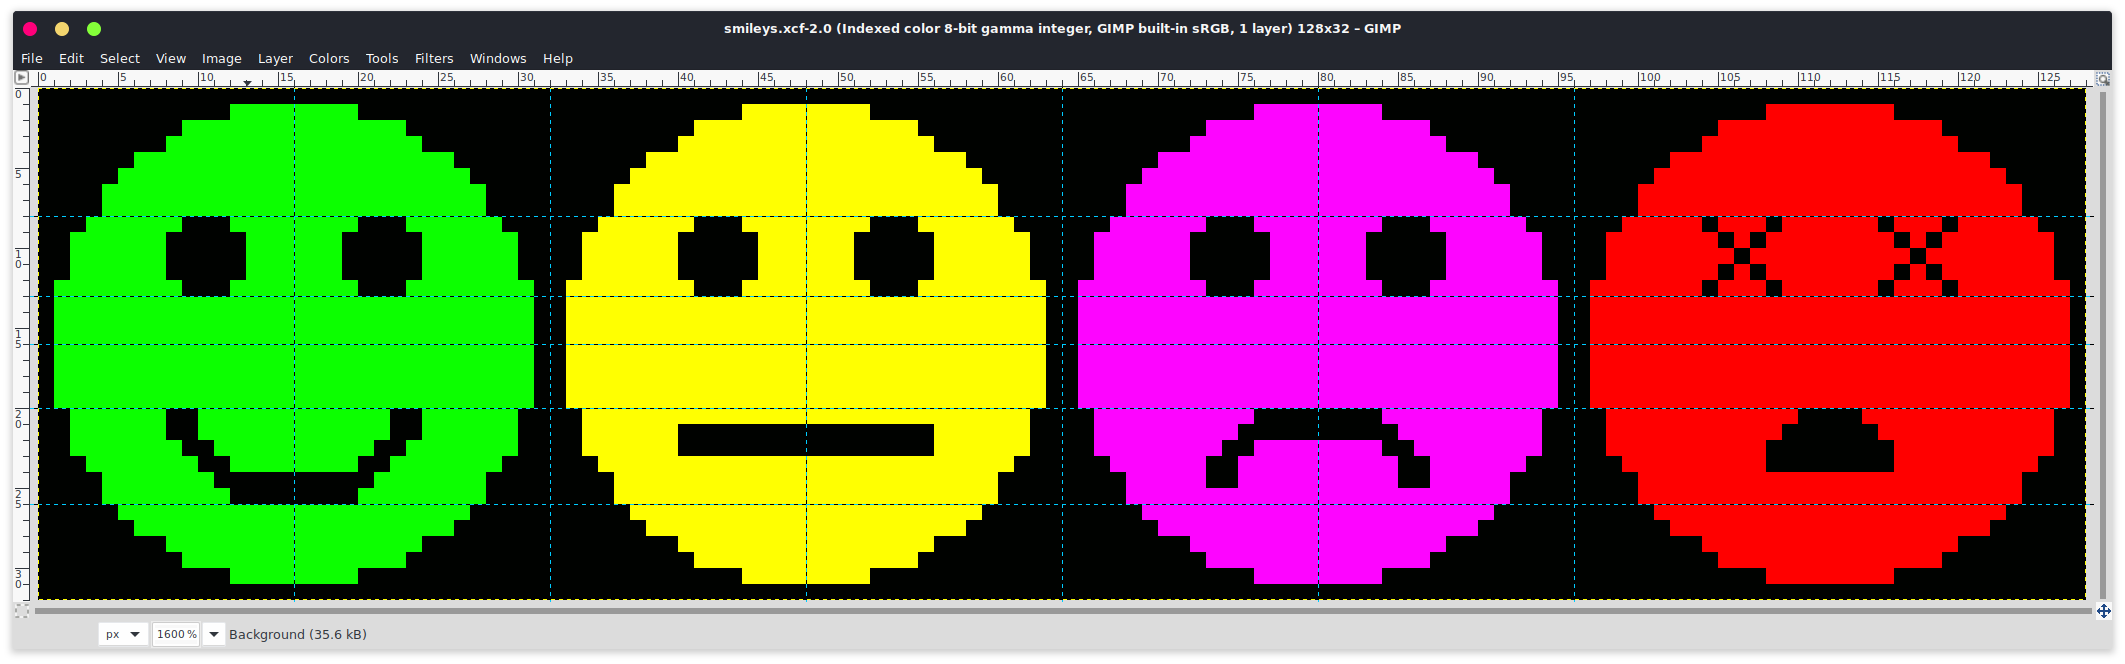 led_matrices_Screenshot_from_2021-02-02_08-48-32.png